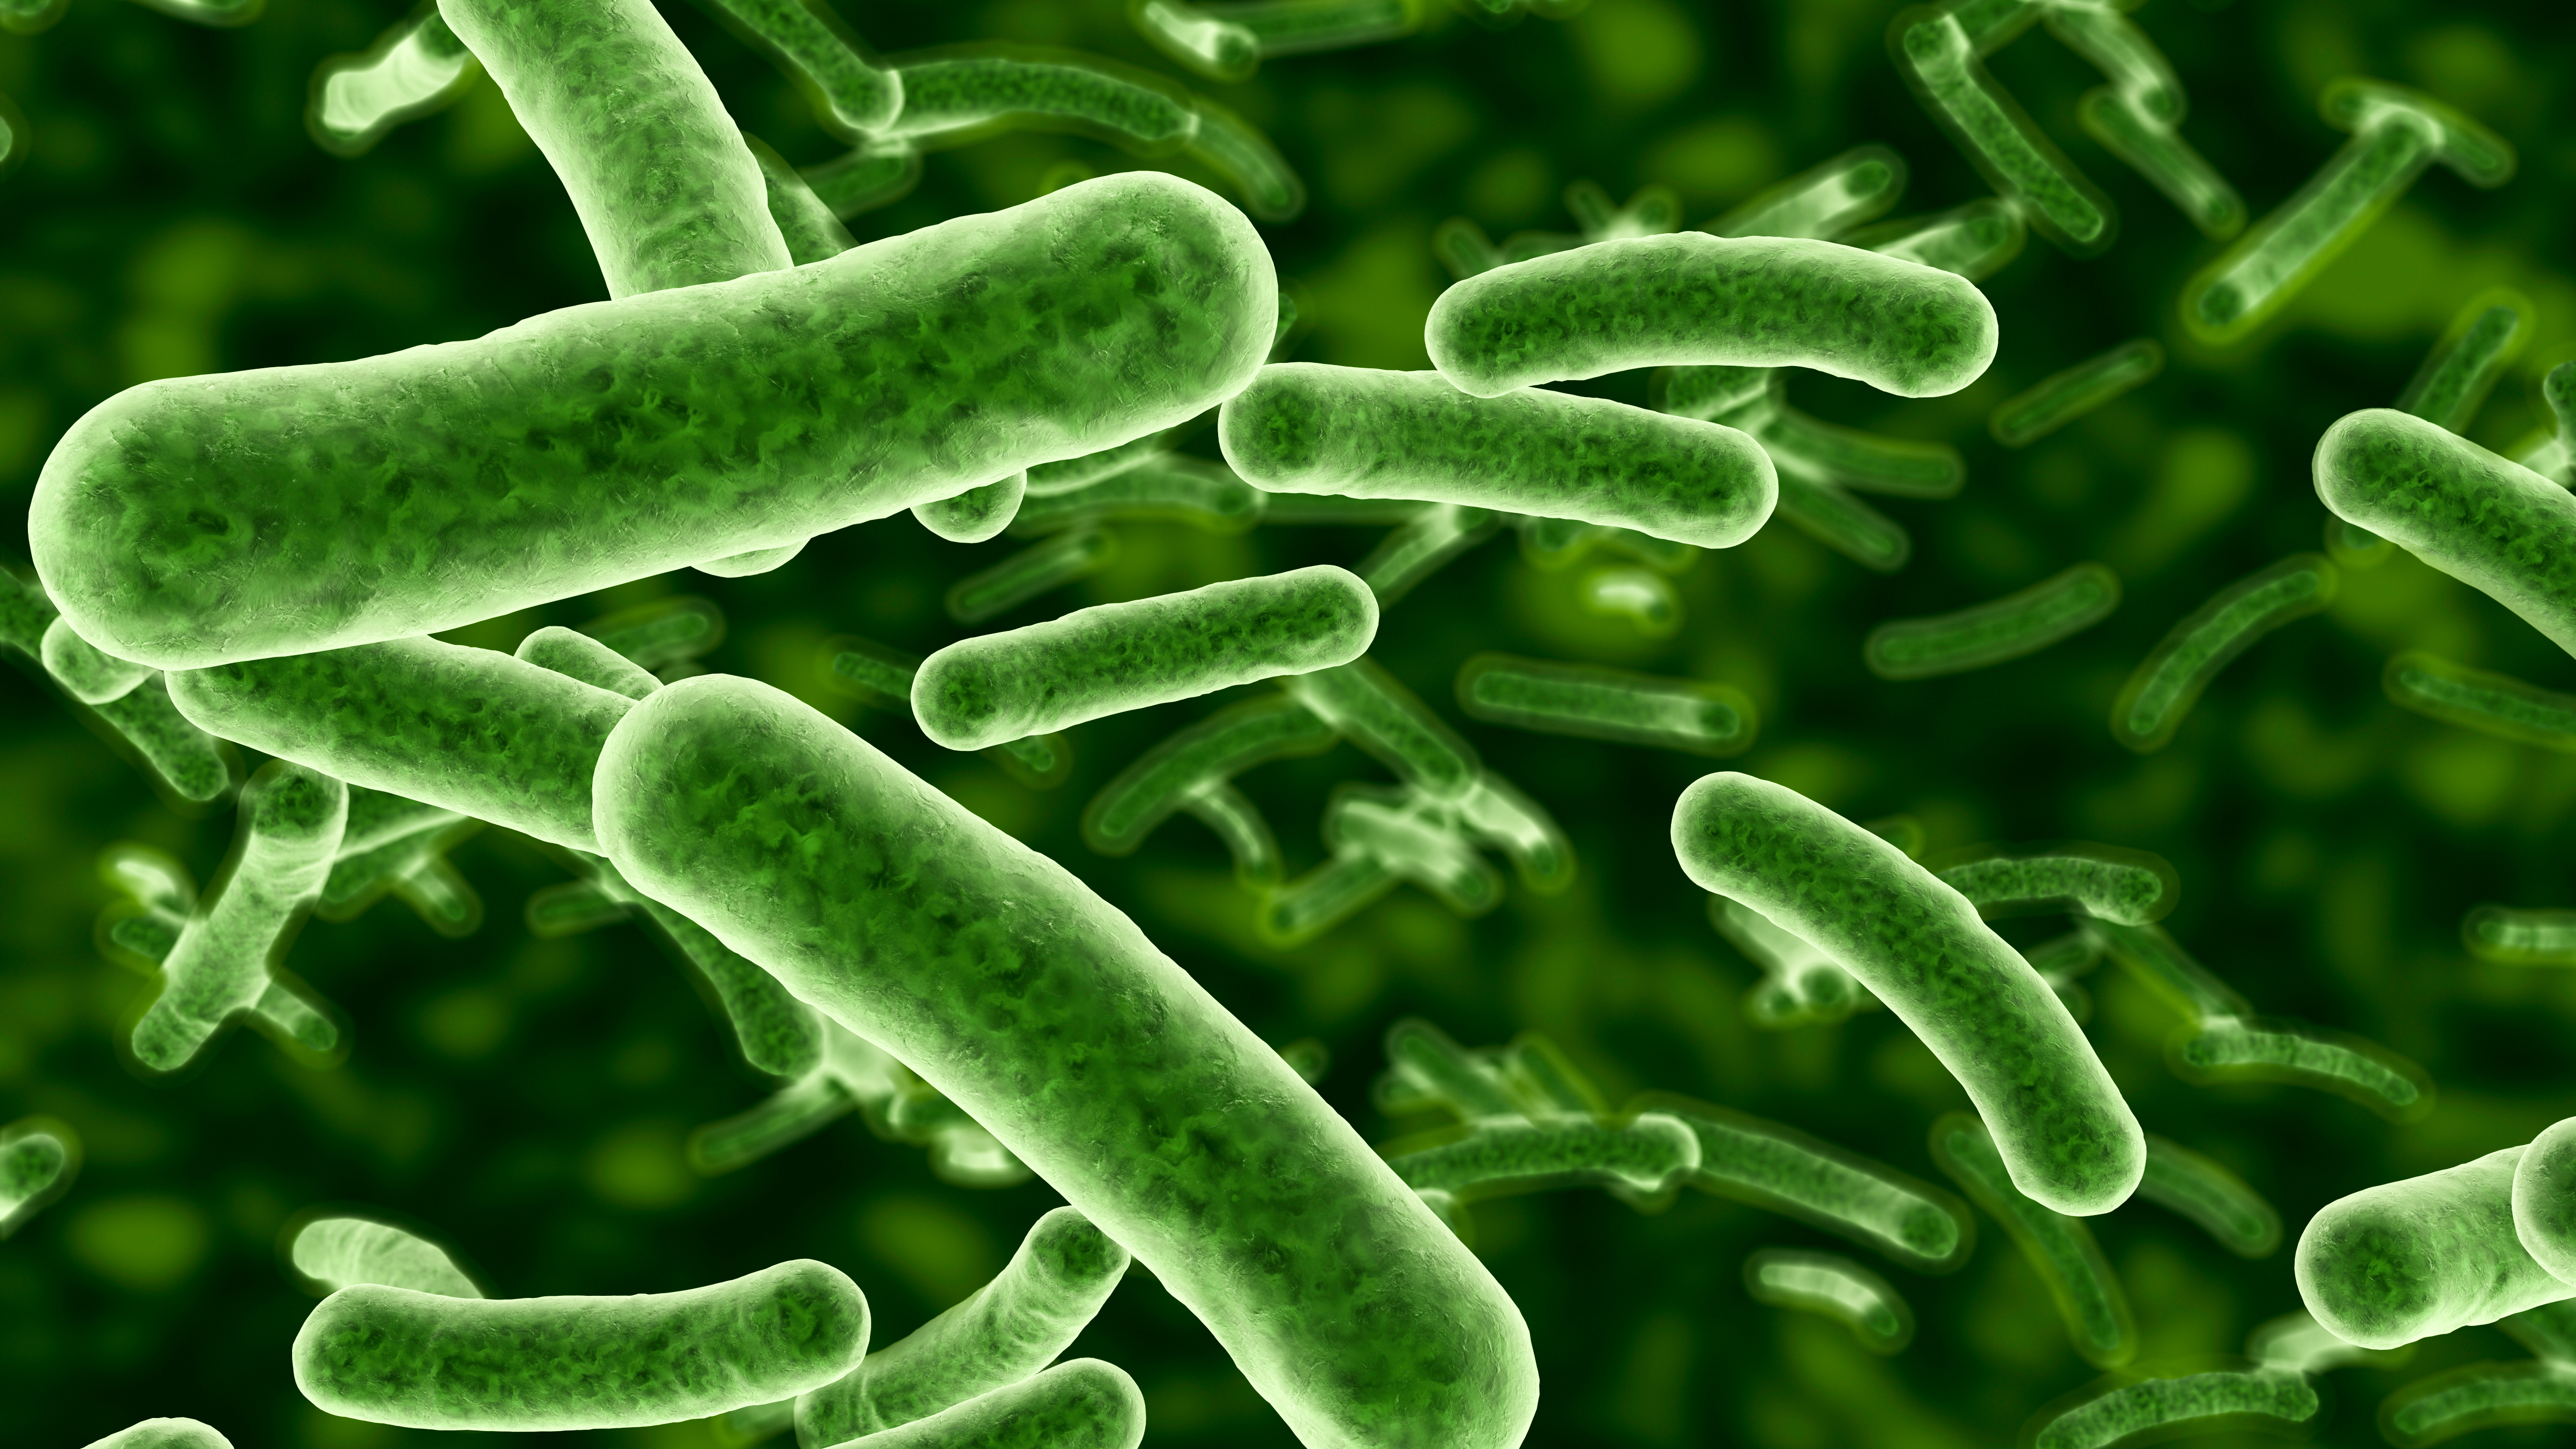 Novel analyses show that bacteria can be used to identify tissue samples. (Picture: iStock.com/Raycat)